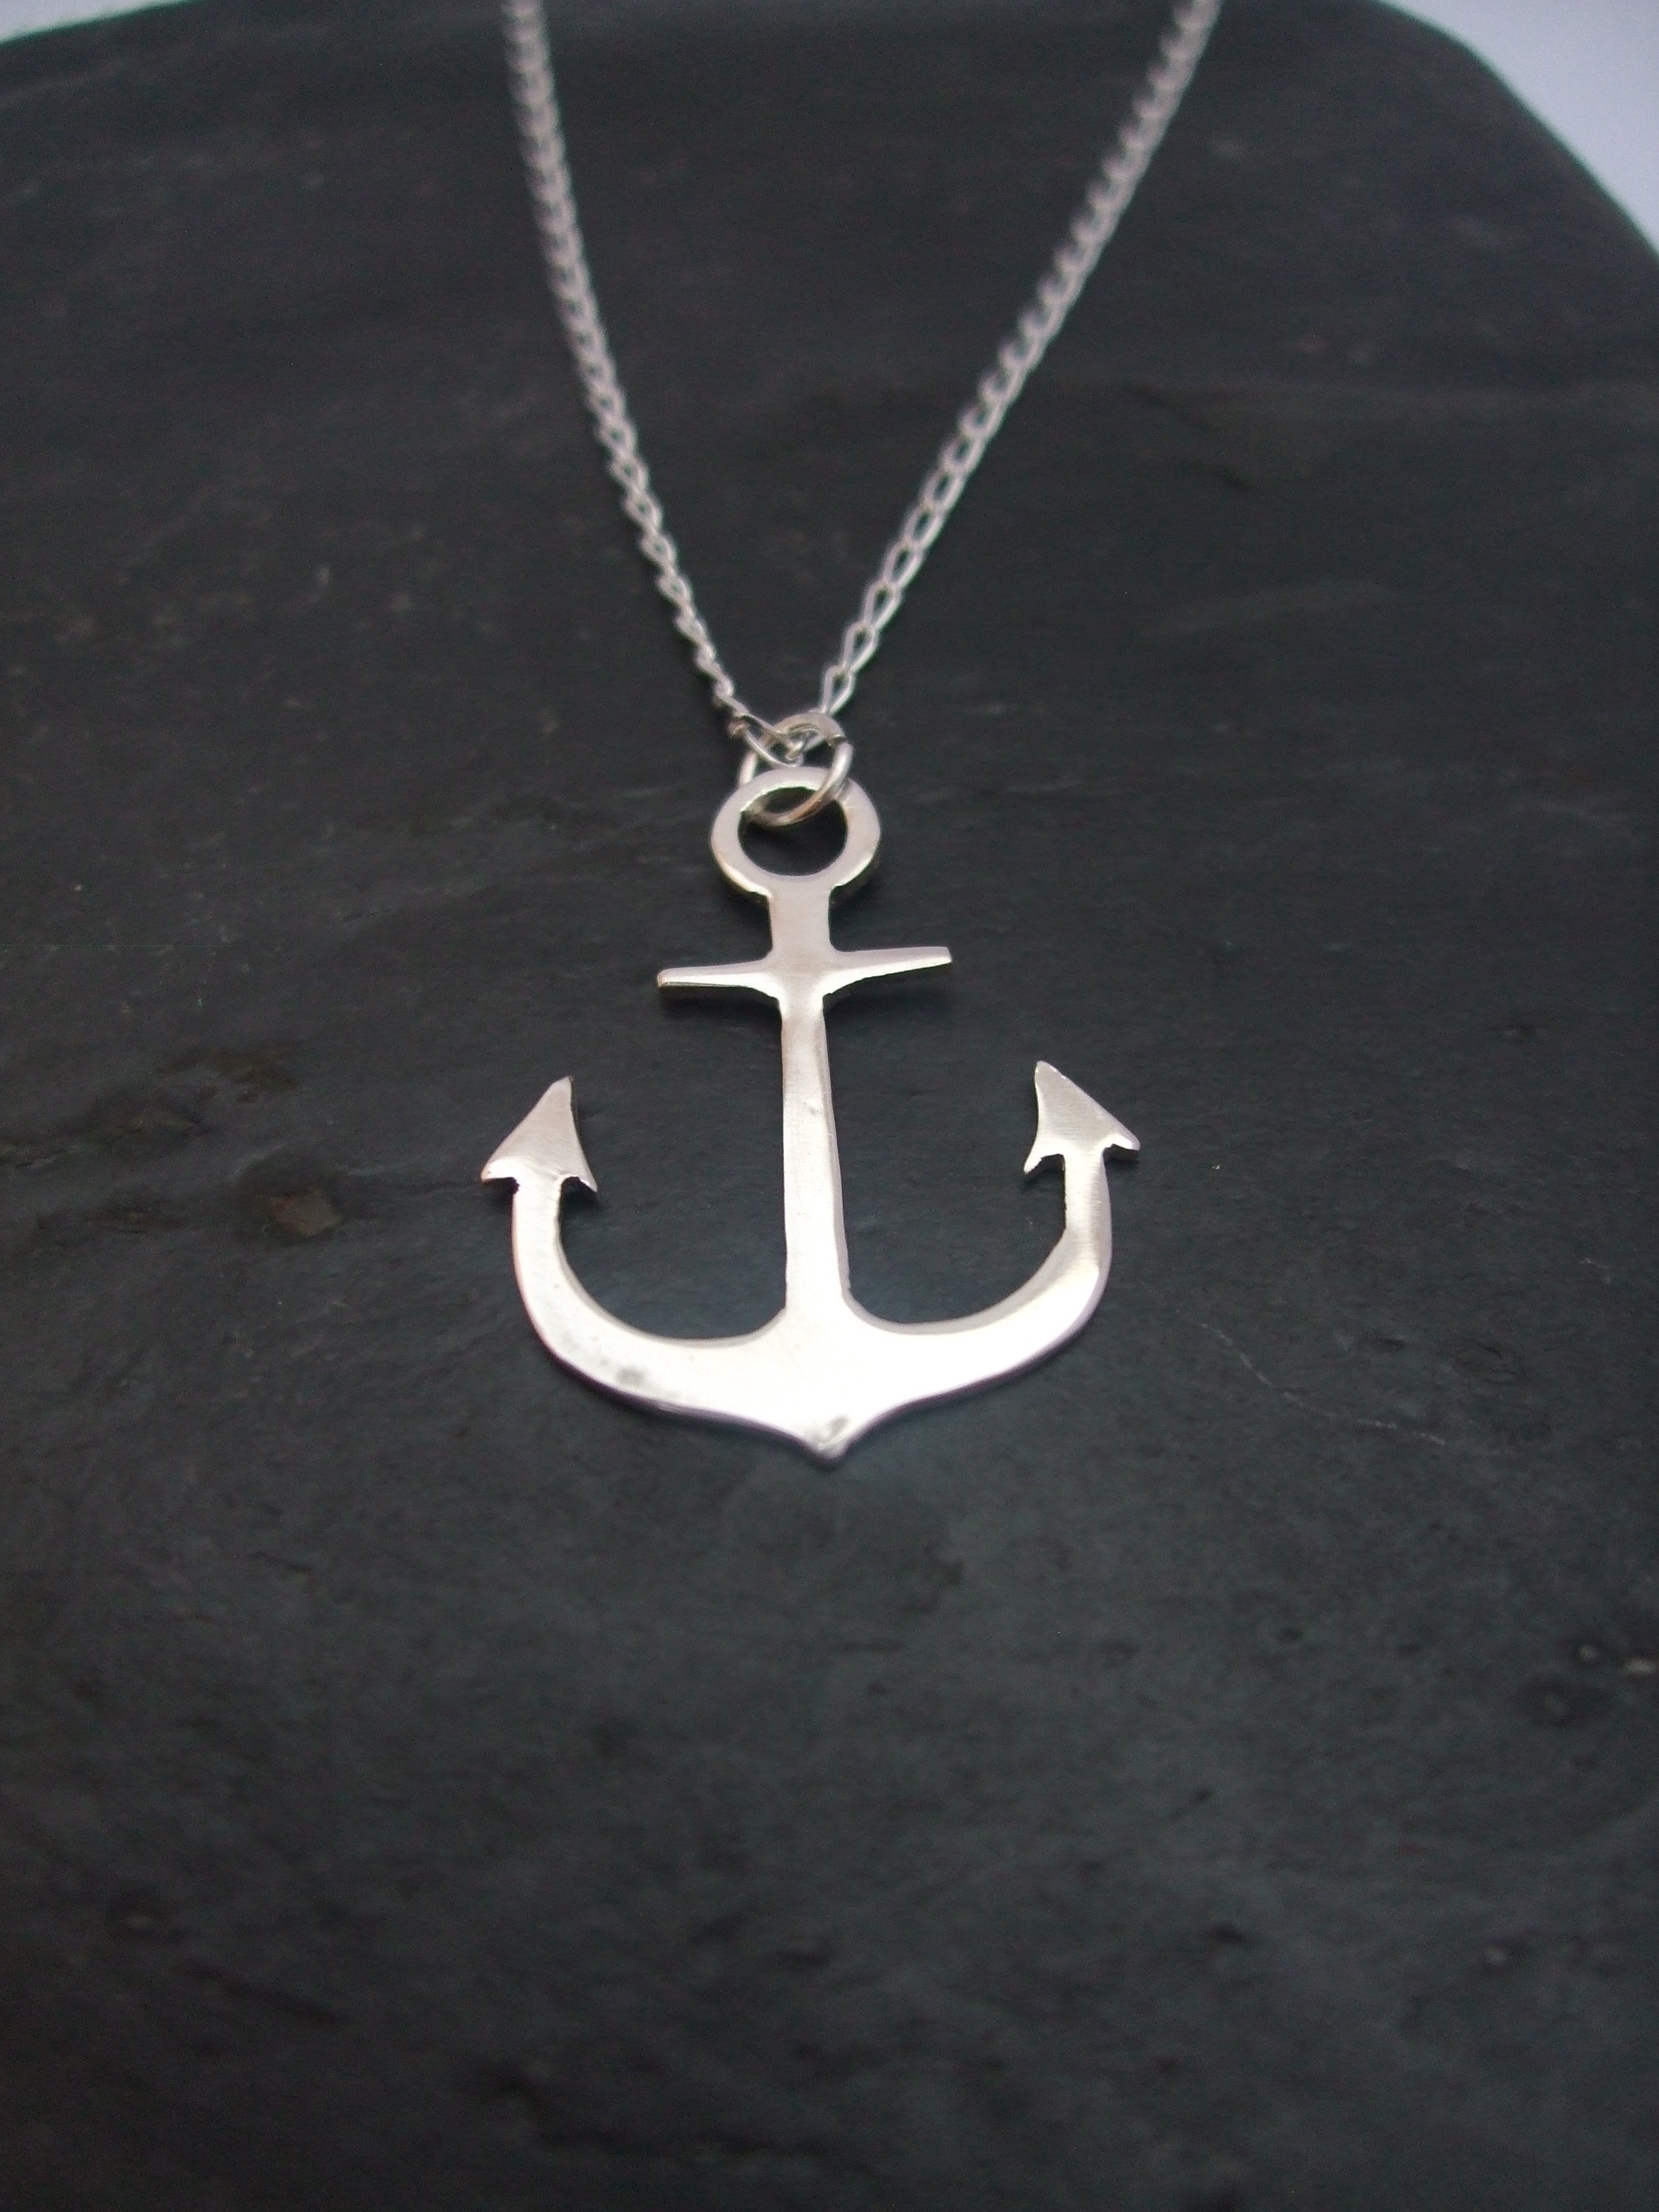 cheque necklace gold and anchor cash product chain pendent with stolen locket